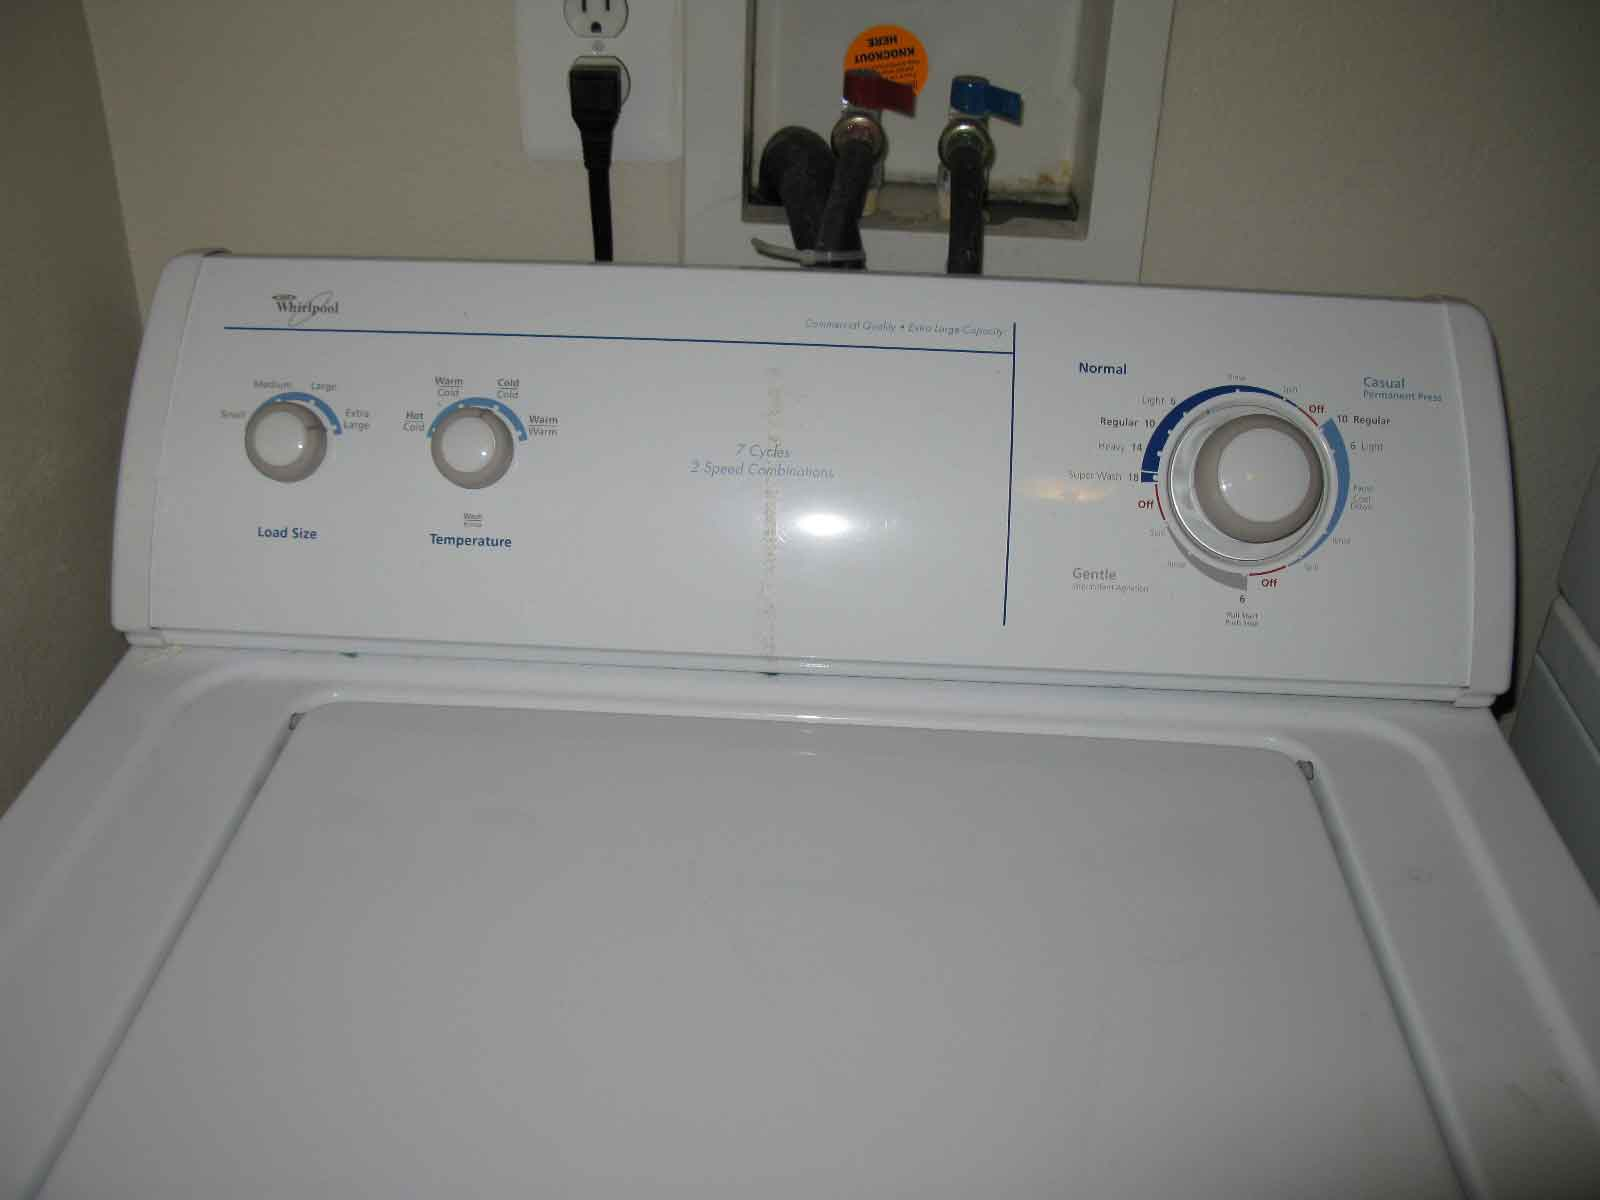 ge front load washer wiring diagram 2001 bmw 325i parts kenmore washing machine model number location, kenmore, get free image about